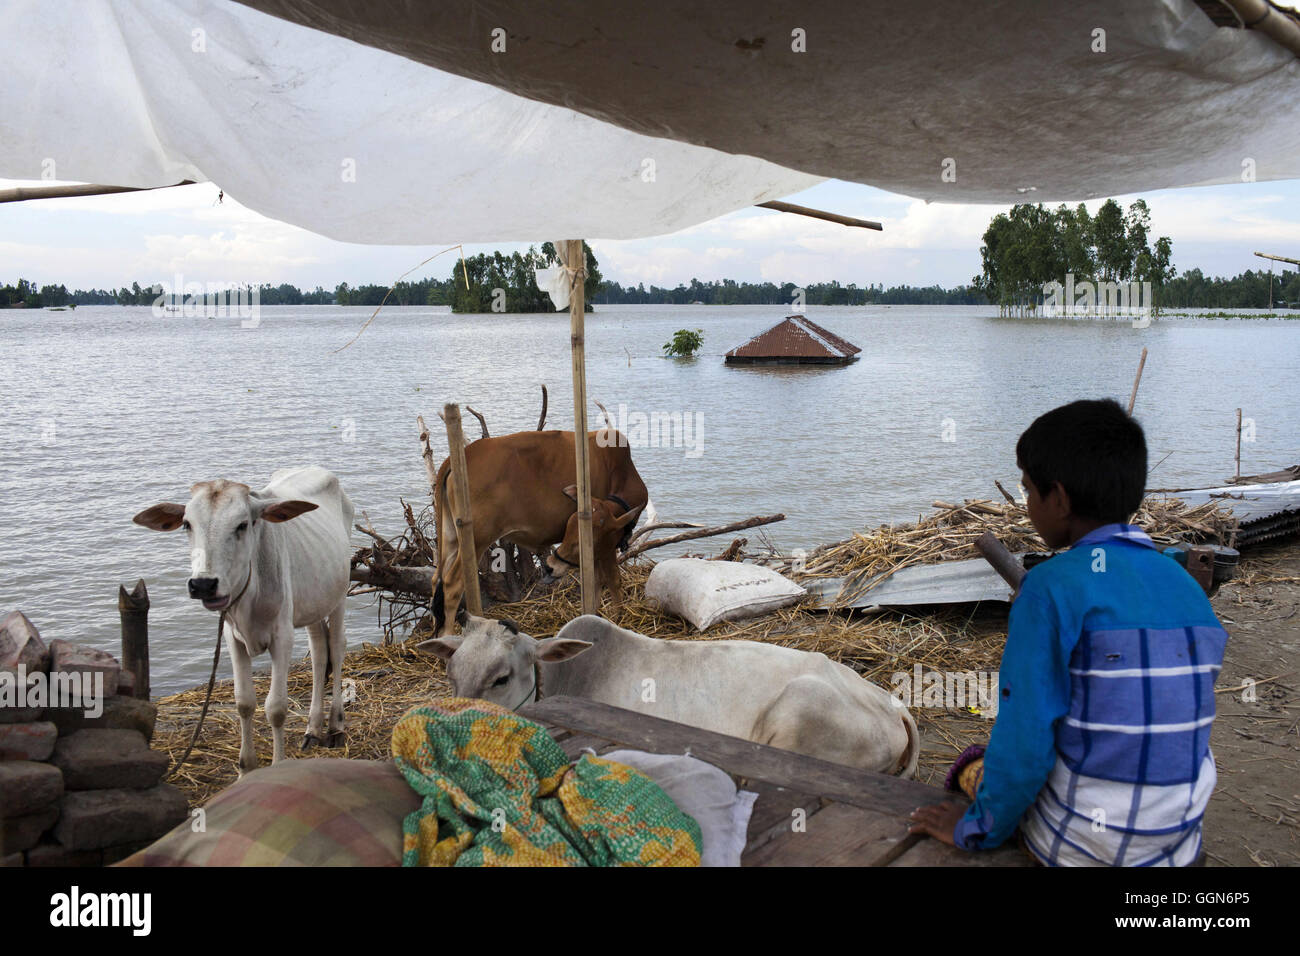 Dhaka, Dhaka, Bangladesh. 1st Aug, 2016. August 01, 2016 - Gaibandha, Bangladesh - After washed out and lost her - Stock Image